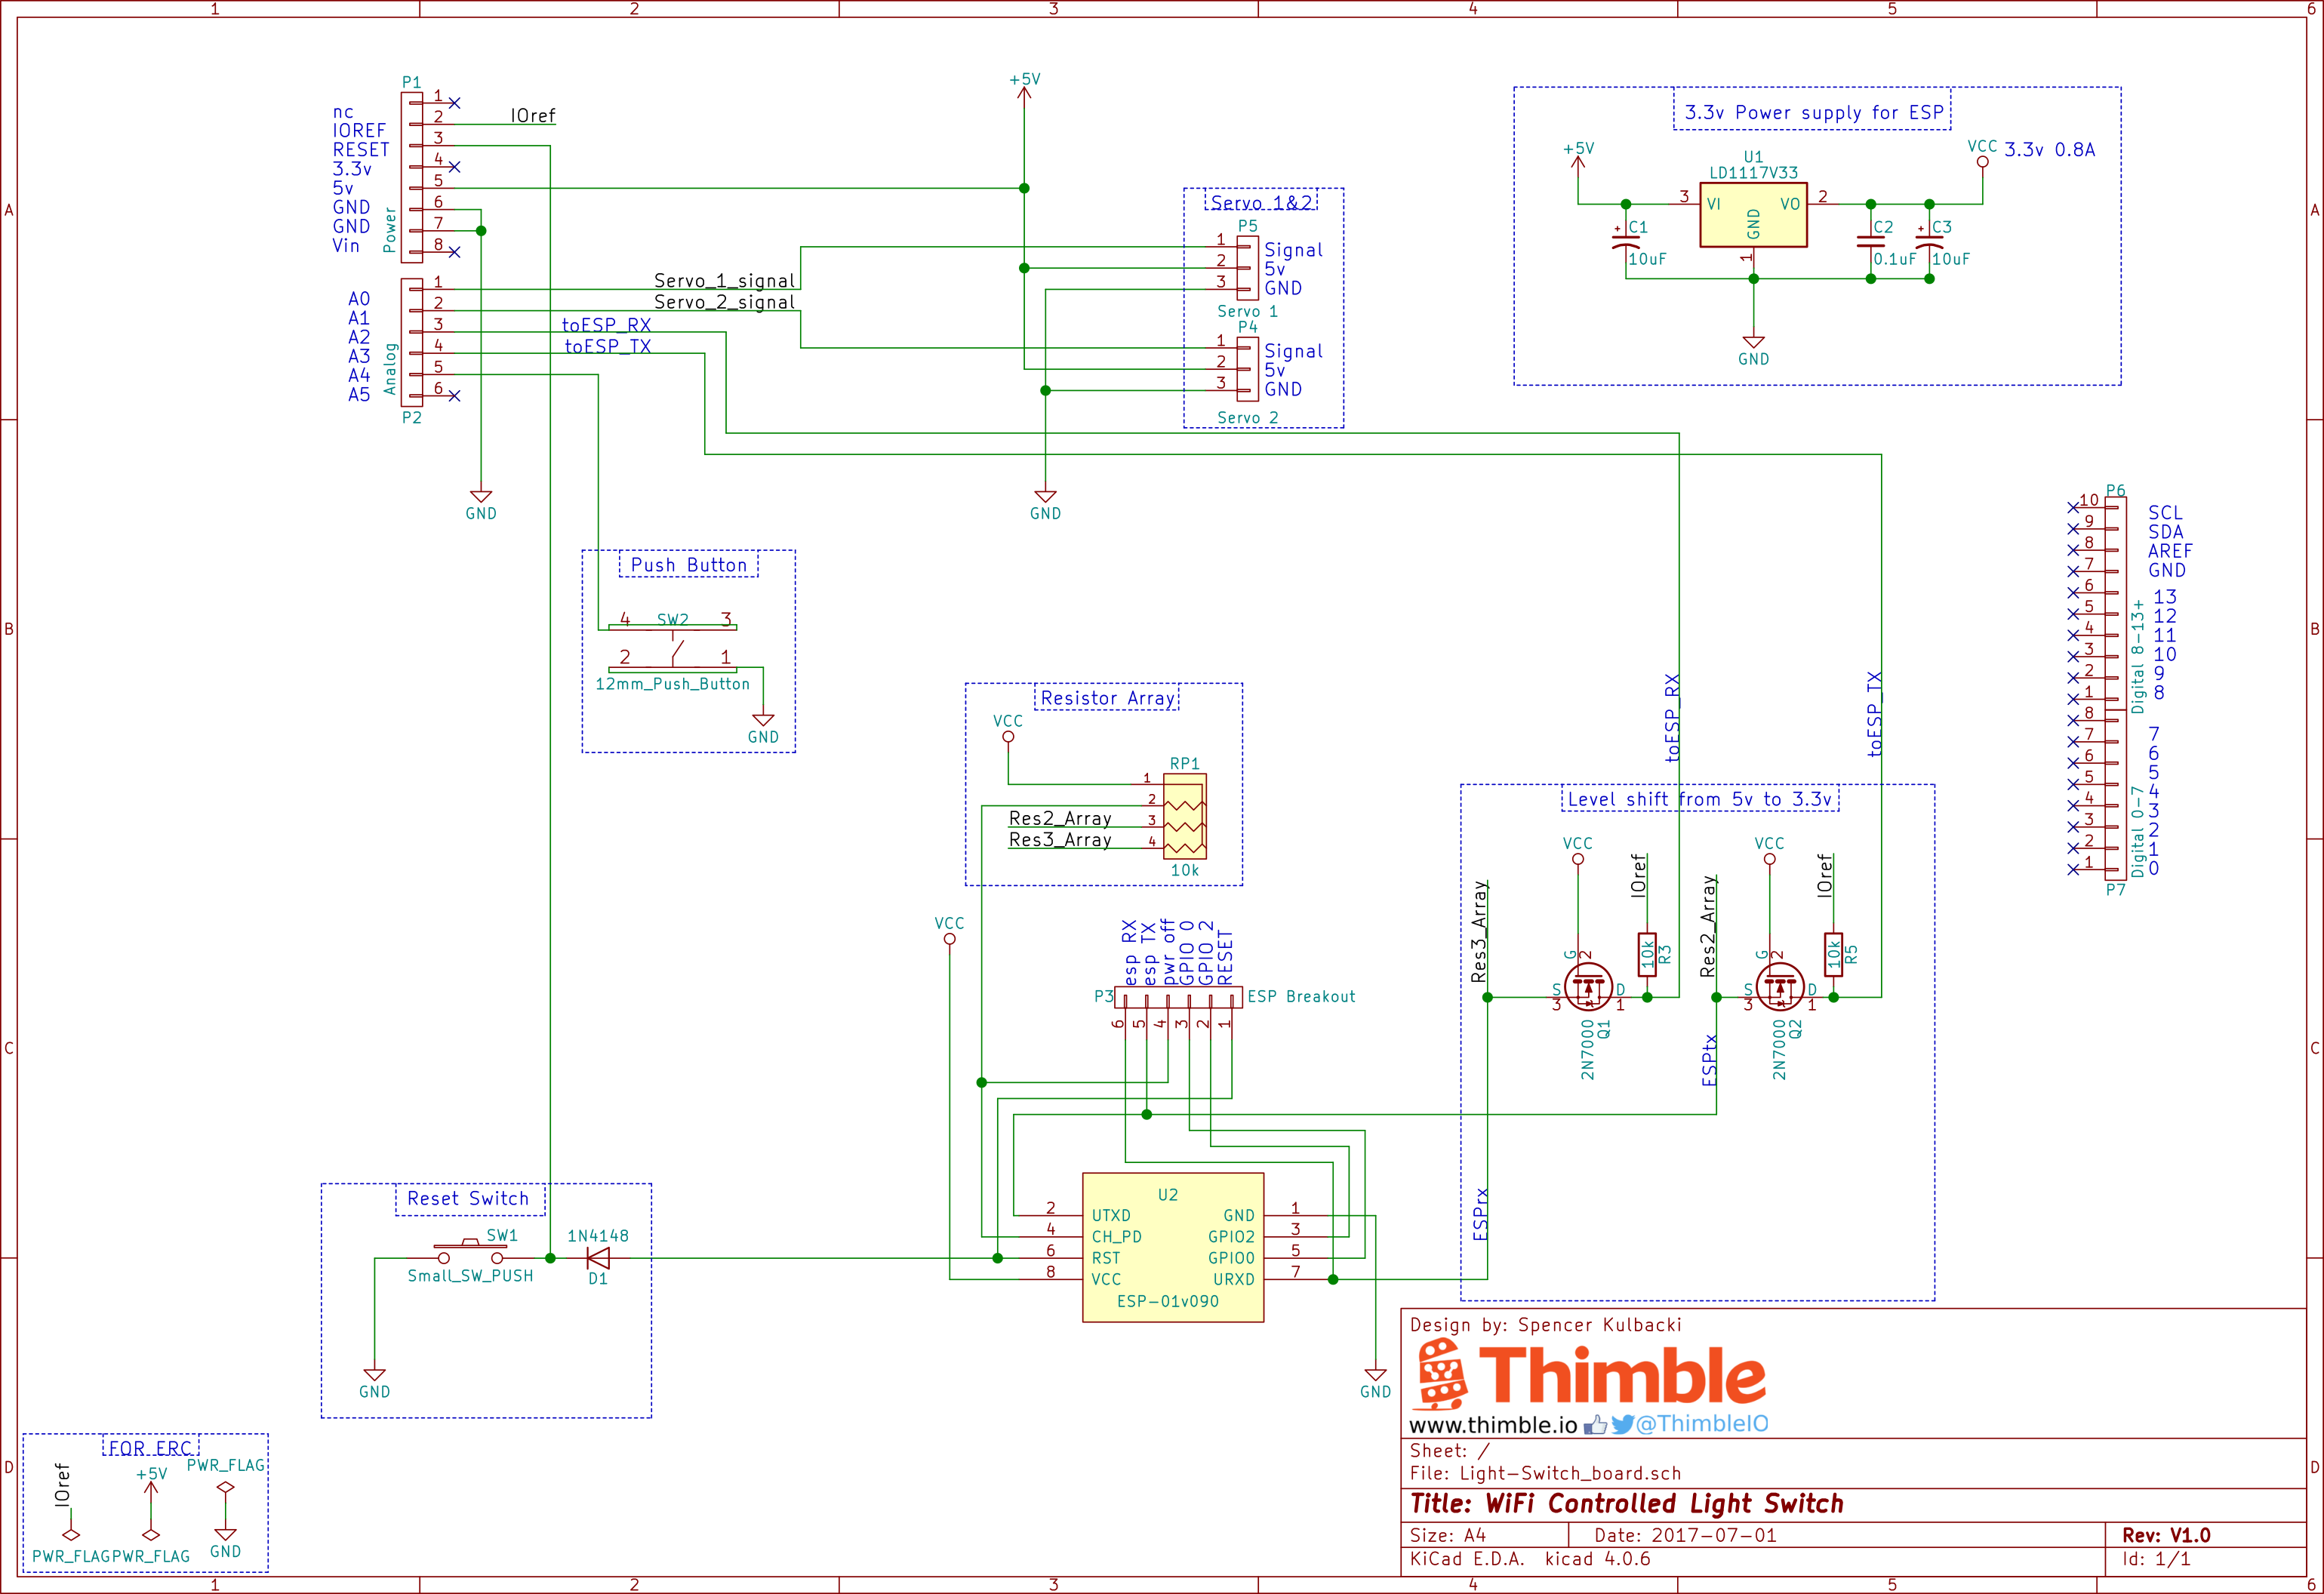 Thimble WiFi Light Switch Schematic